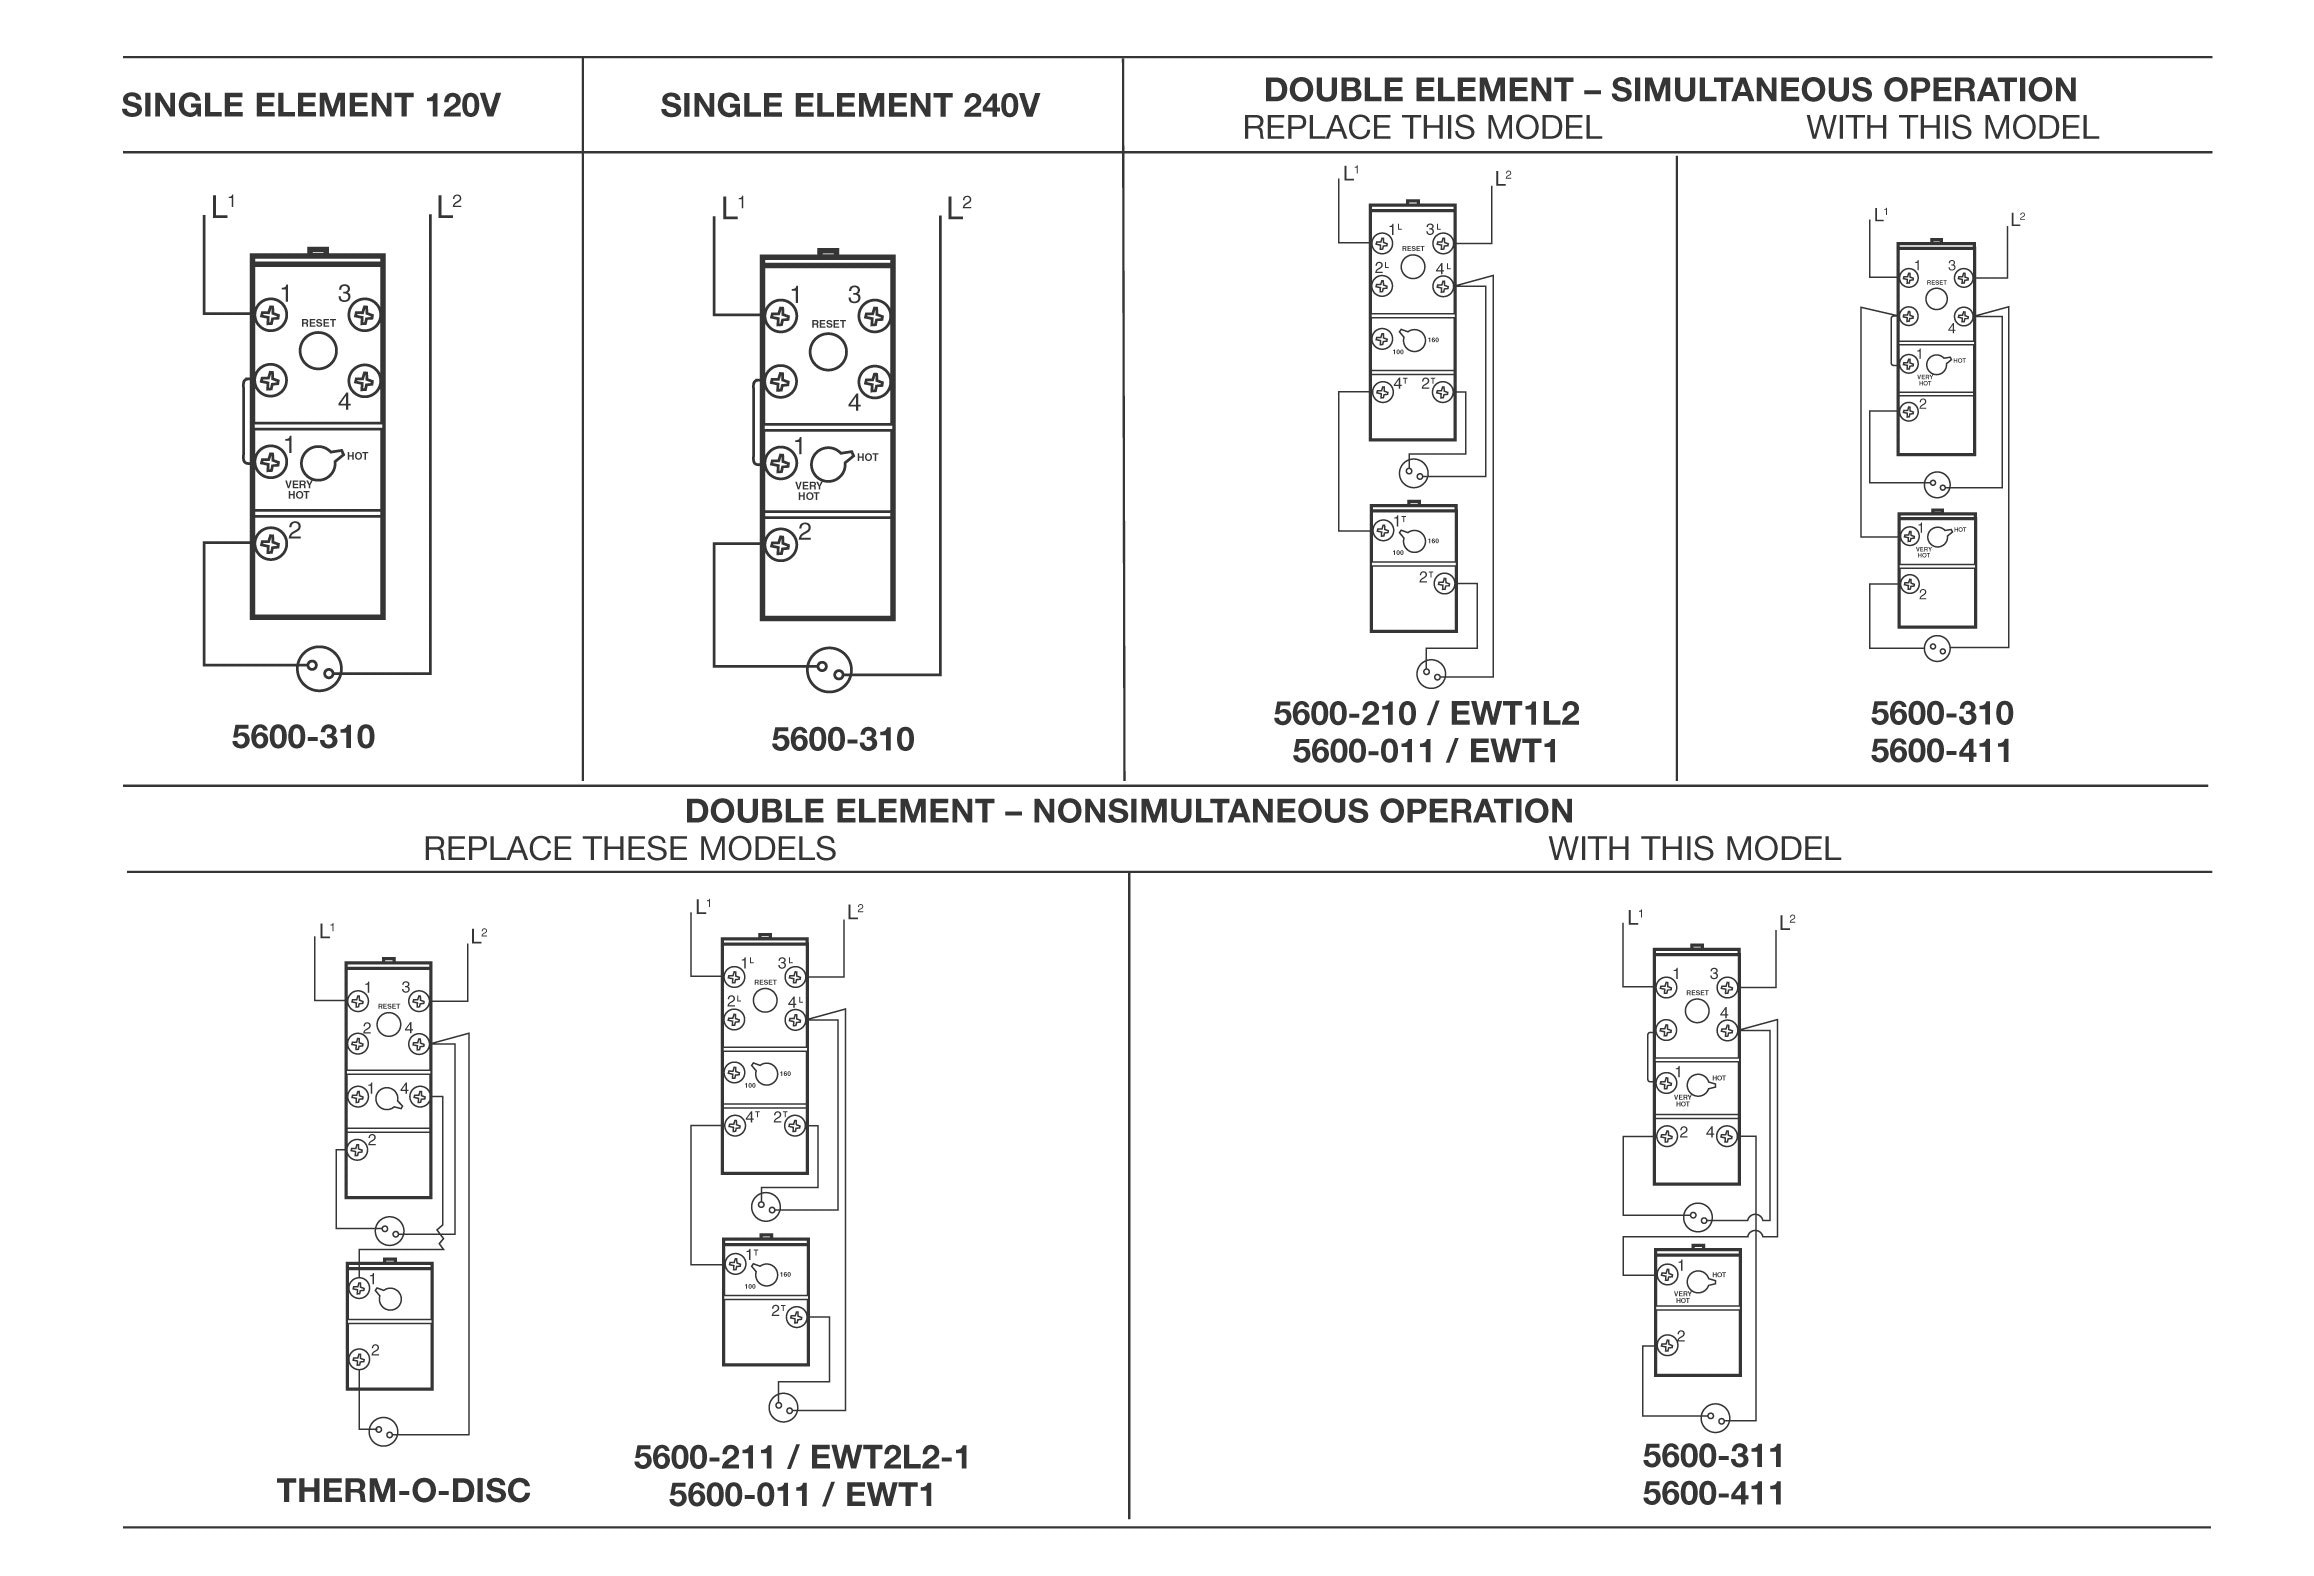 robertshaw thermostat wiring diagram Download-Water Heater Wiring Diagram Dual Element Awesome Robertshaw thermostat Wiring Diagram 16-f